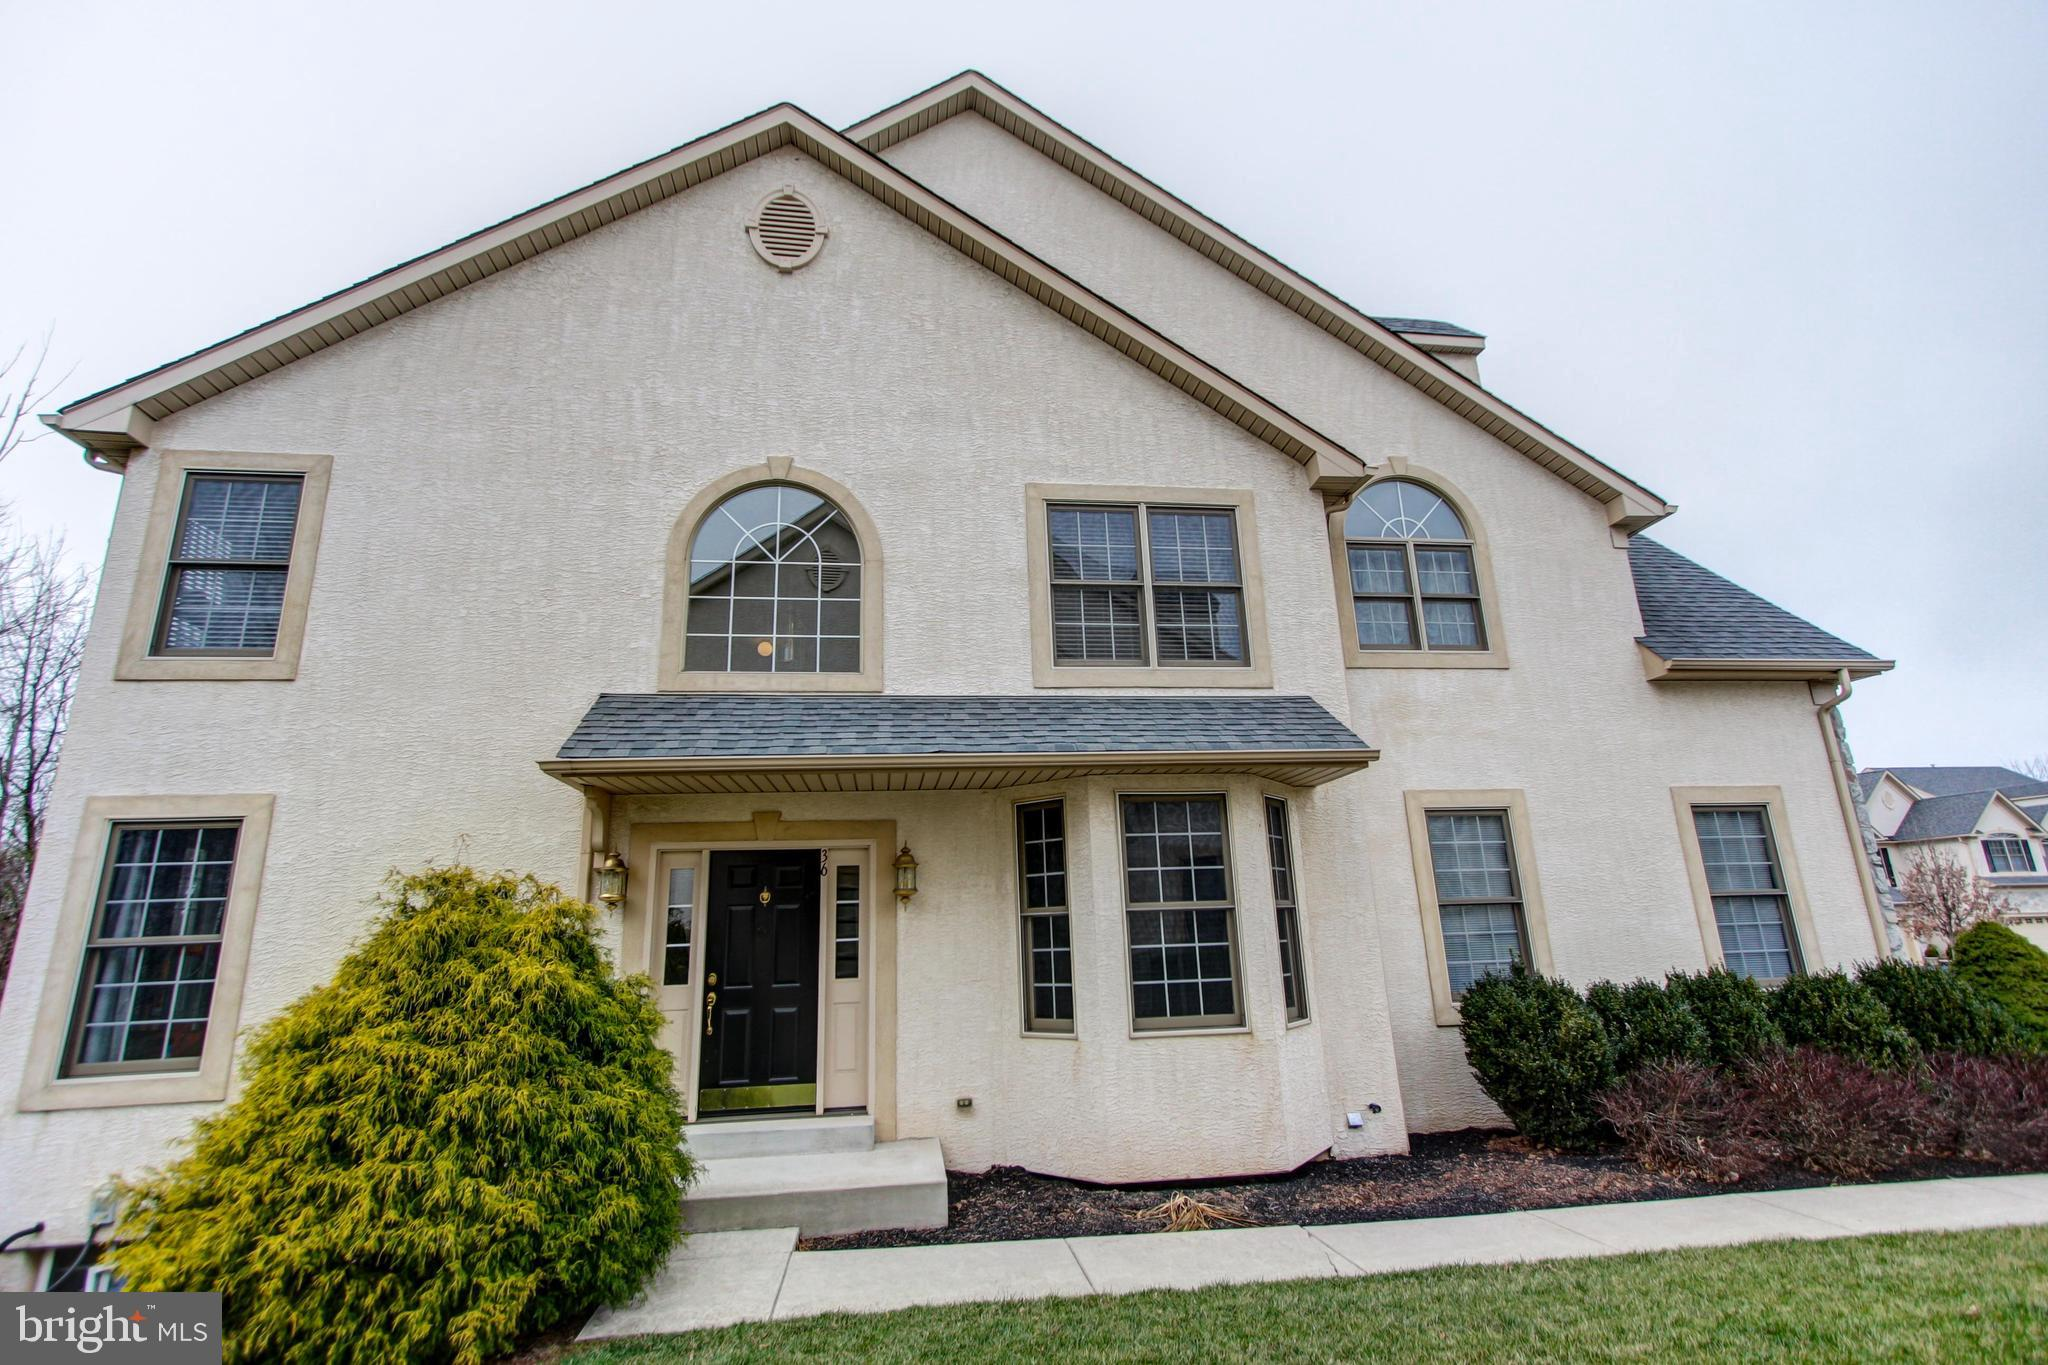 36 BROWNSTONE DRIVE, NORRISTOWN, PA 19401